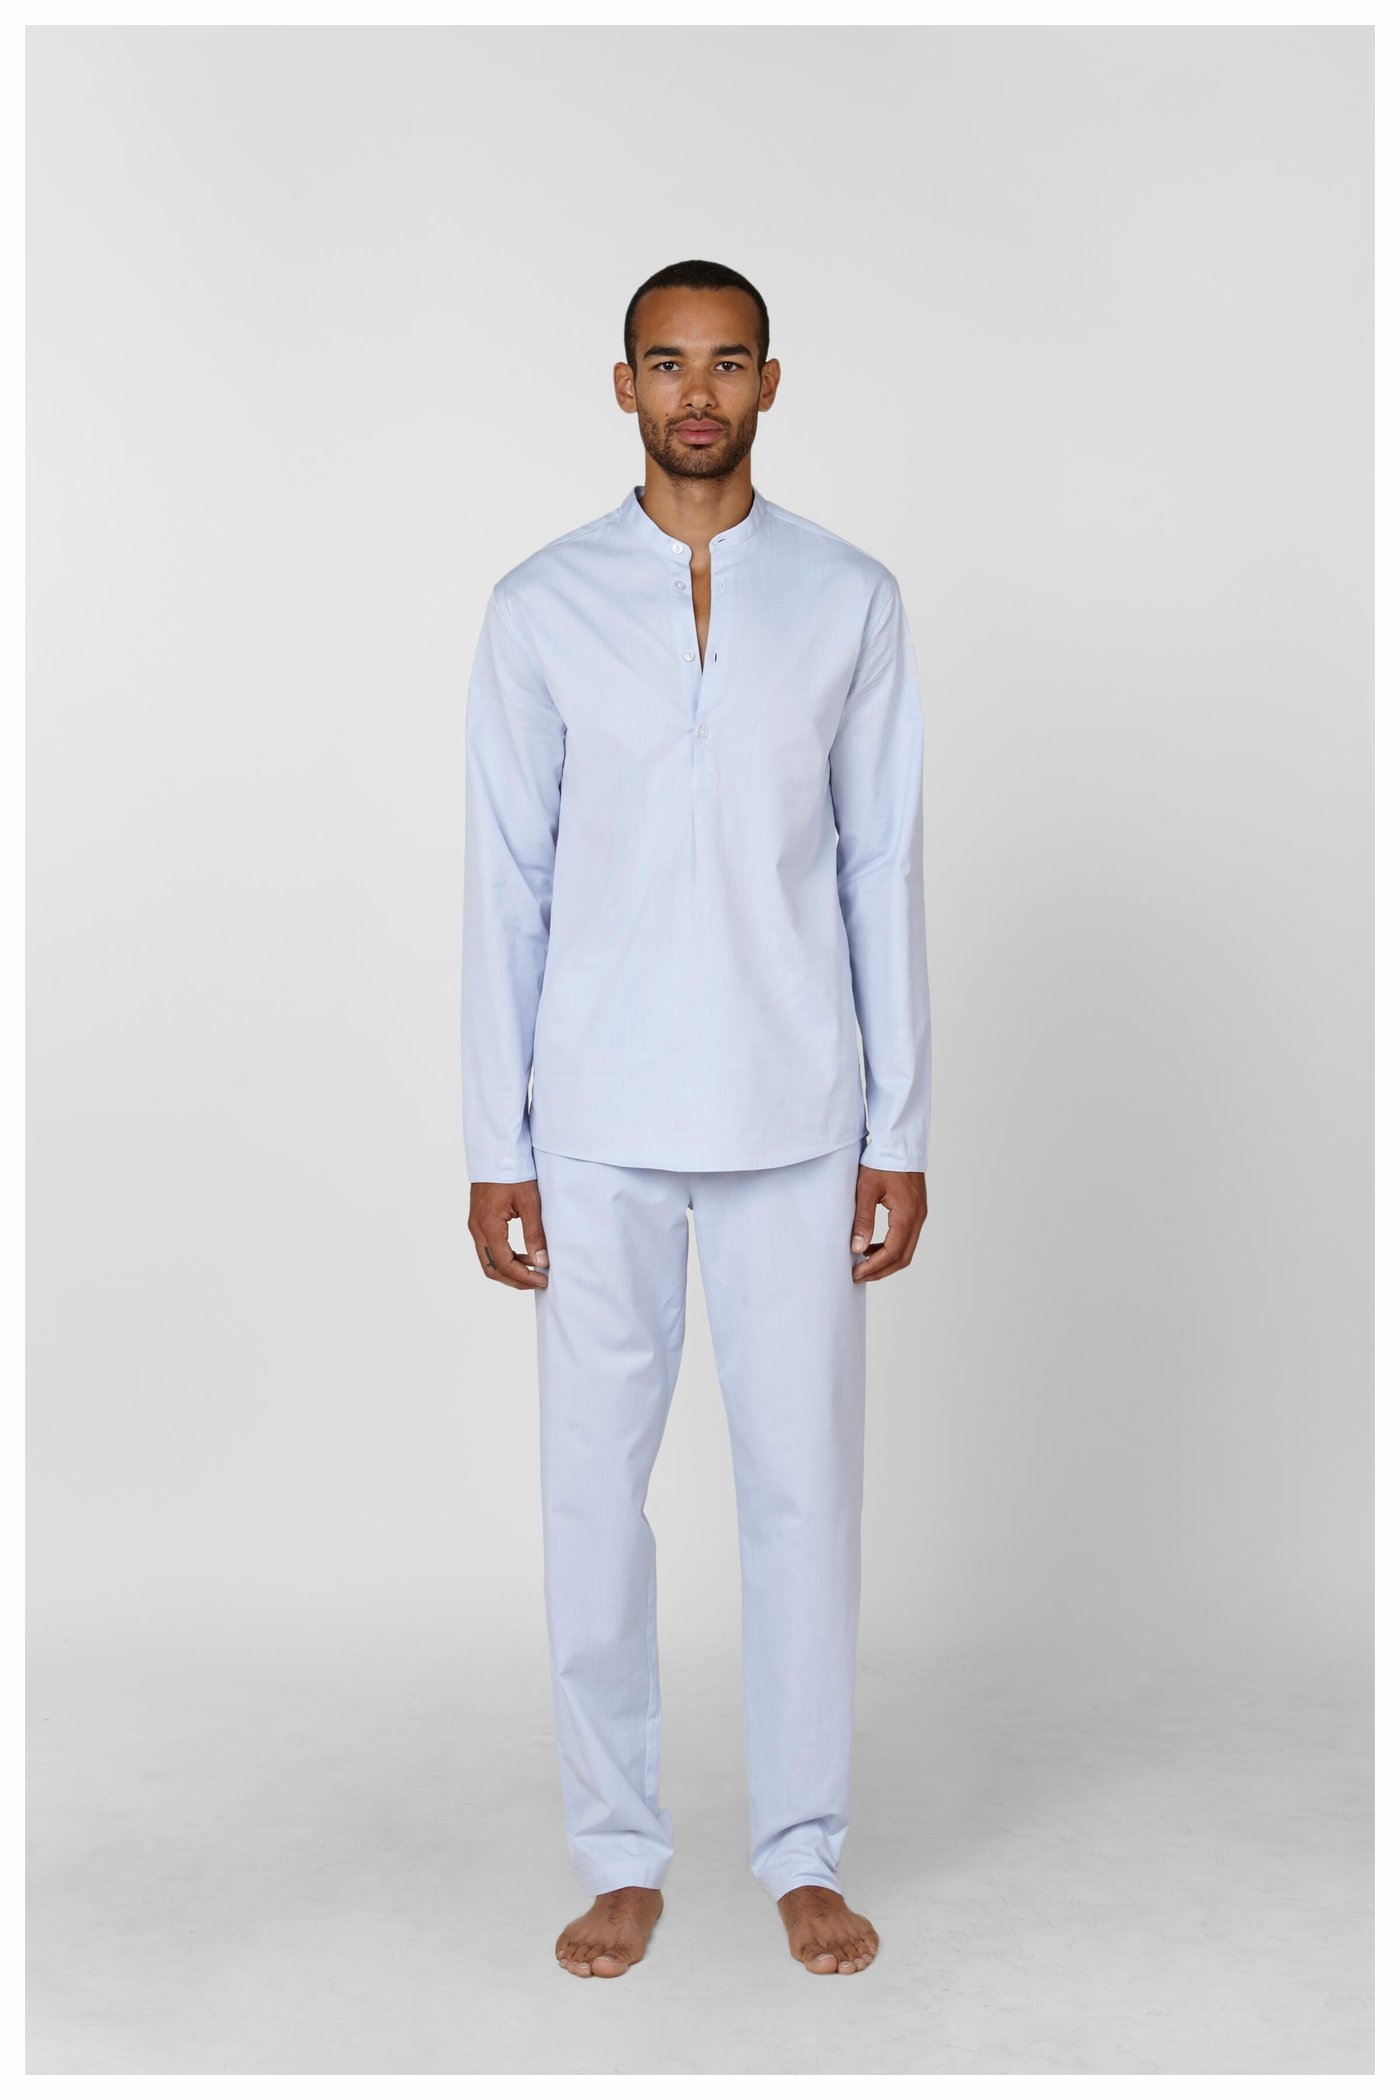 pyjamas-light-blue-1_1400x.jpg